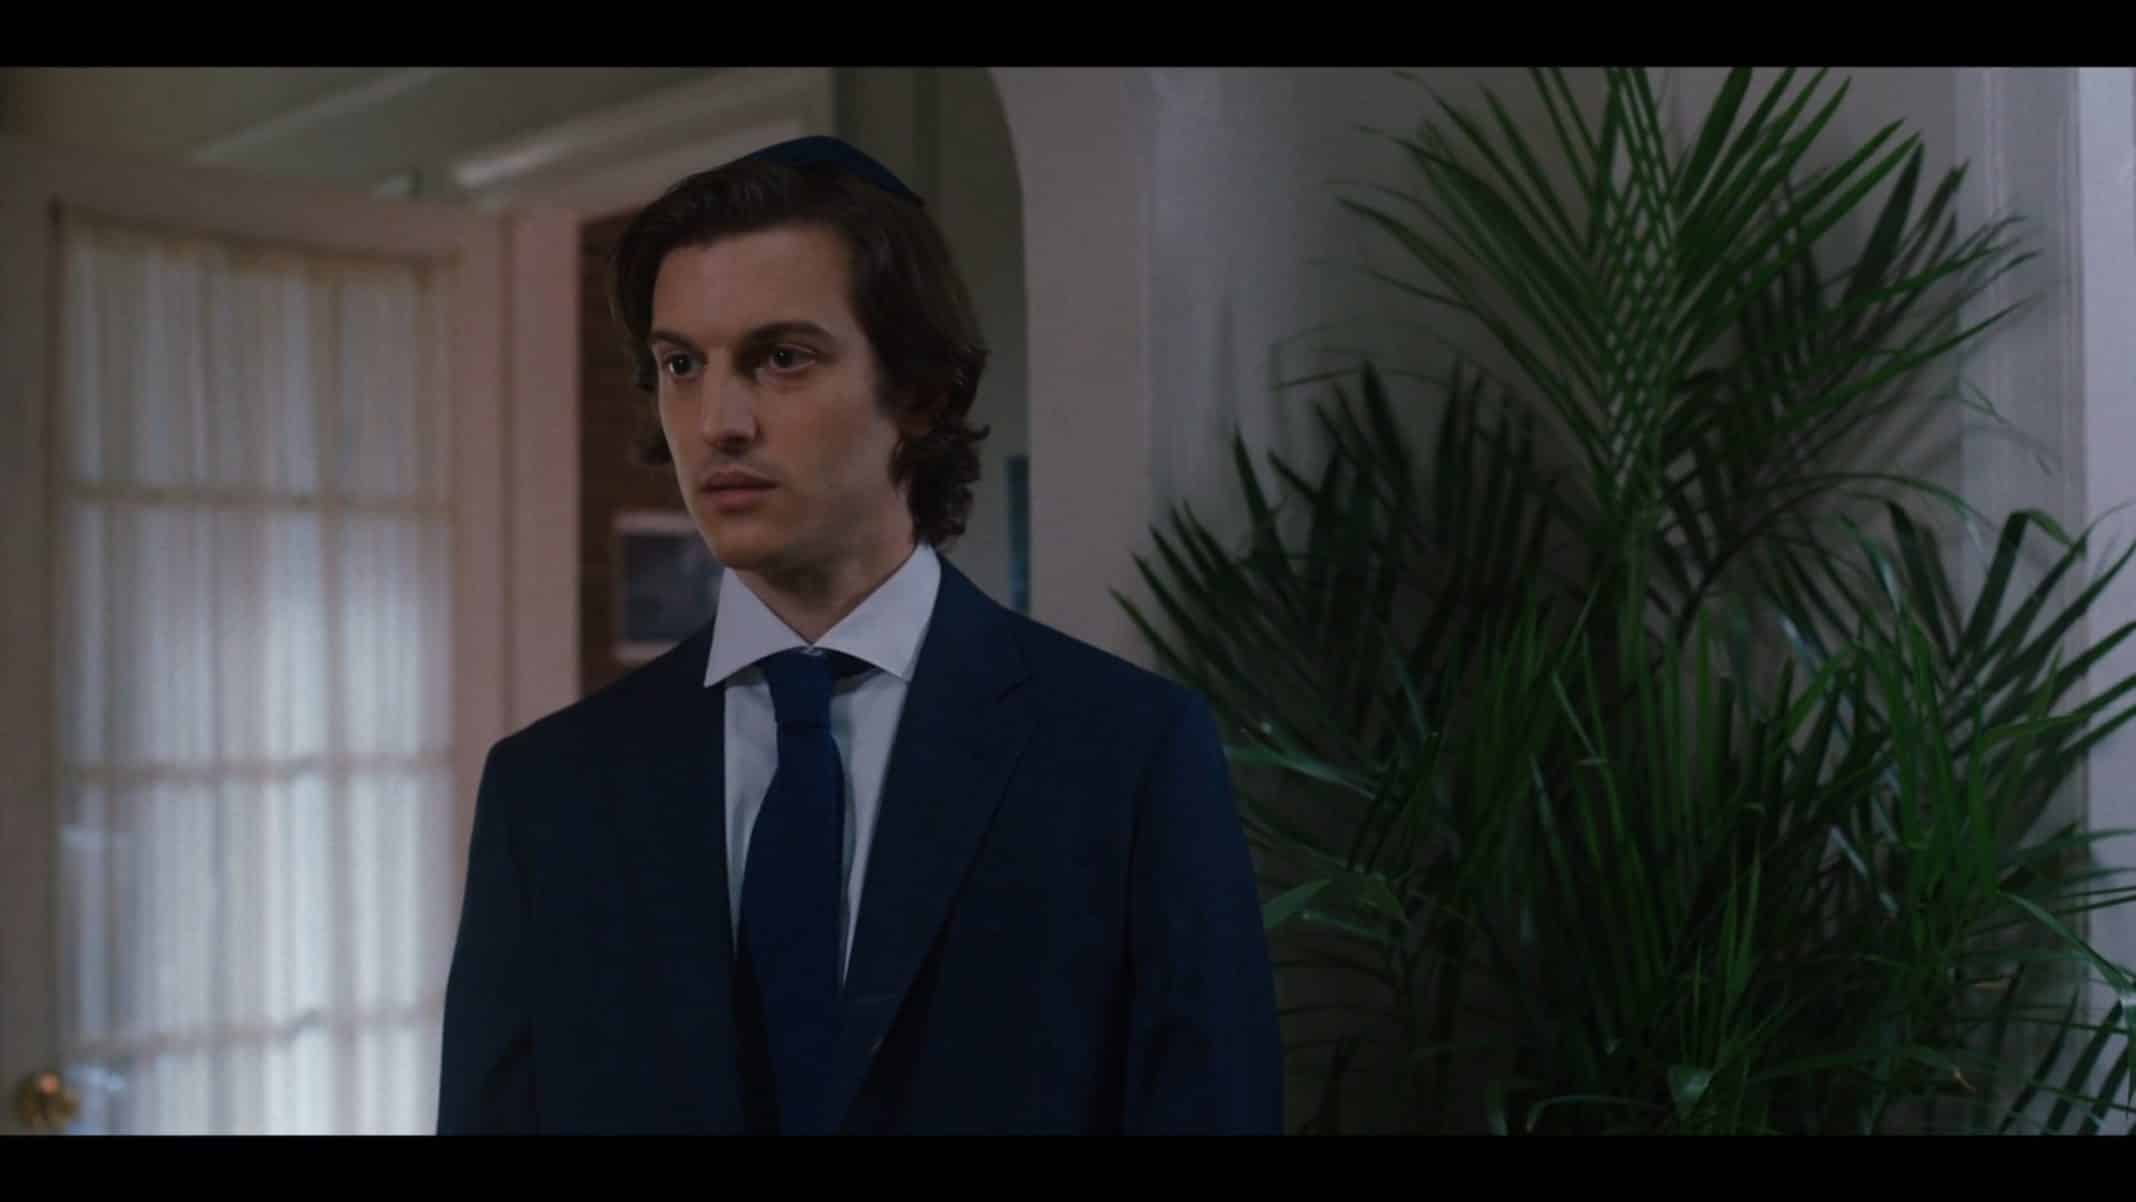 Jim (Peter Vack) getting ready for a family event.